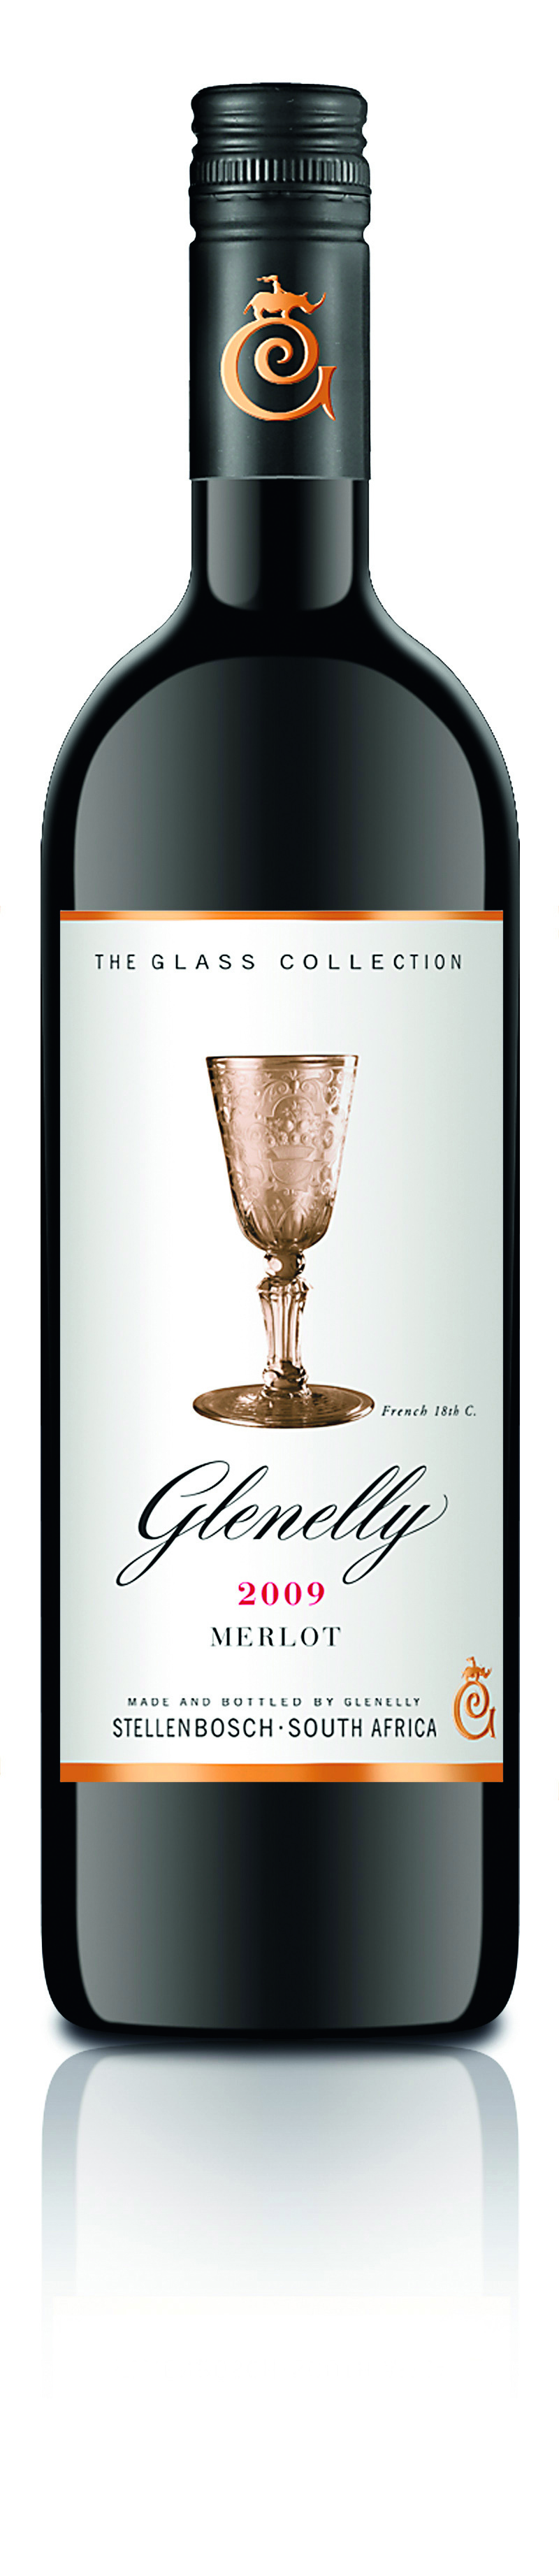 2014 Merlot Glass Collection Glenelly Estate Stellenbosch